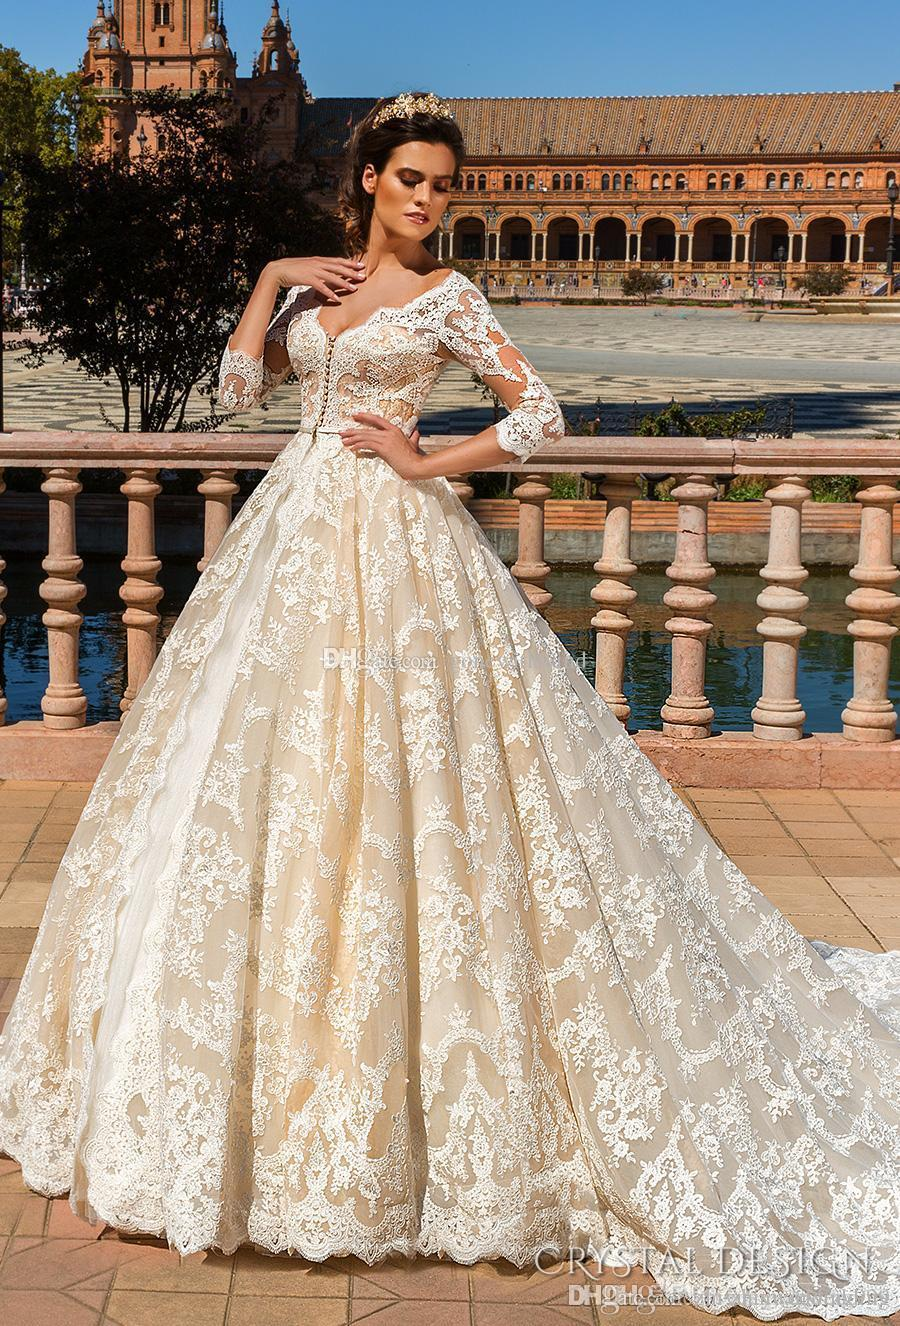 e25689e6a0 ... Illusion Plunging V Neck Strapless Gown. Princess Blush Nude Lace Ball  Gown Wedding Dresses 2017 Crystal .